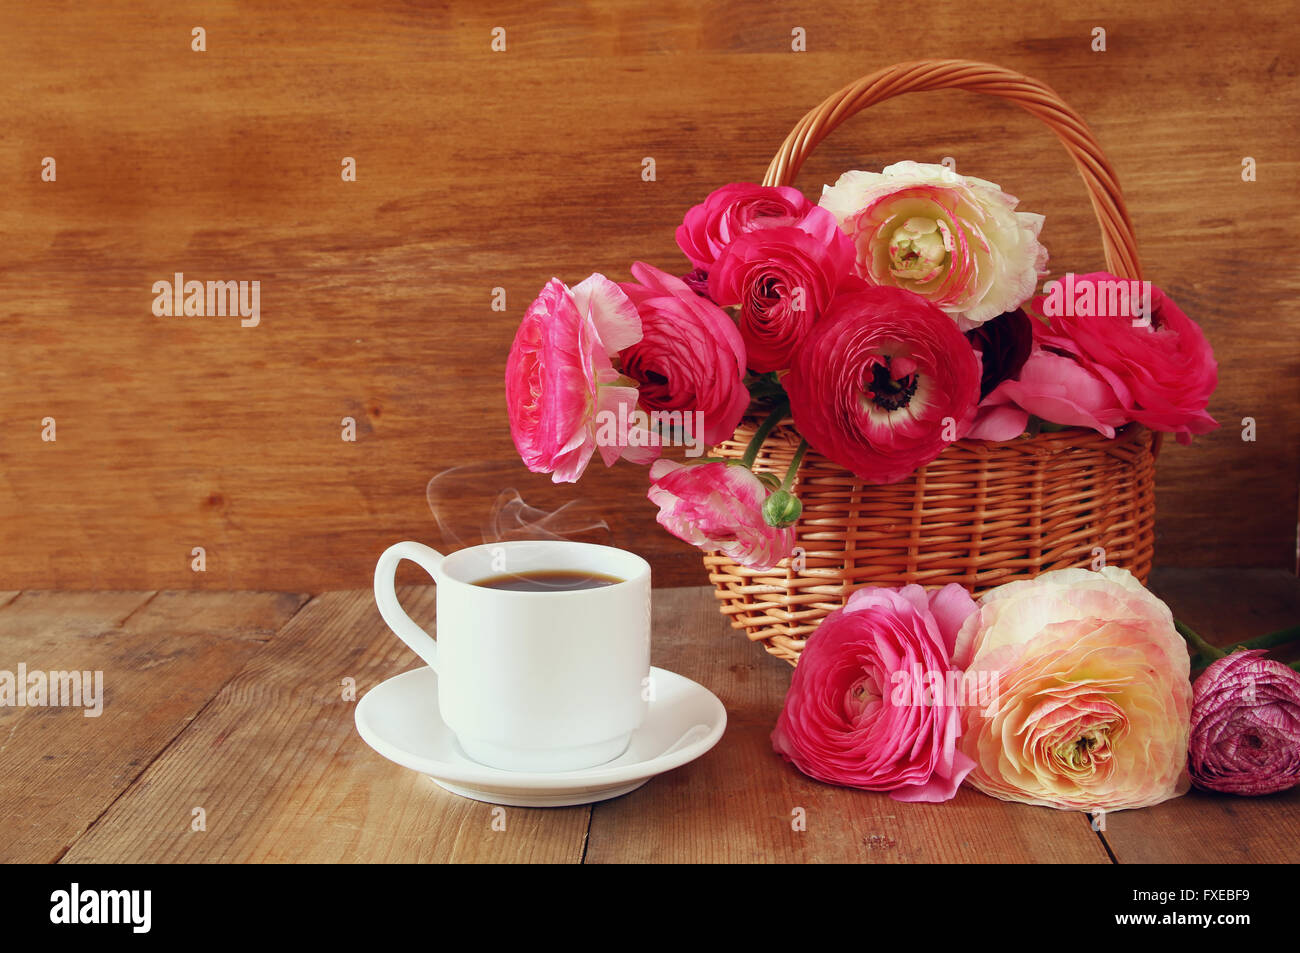 image of beautiful flowers next to cup of coffee. - Stock Image